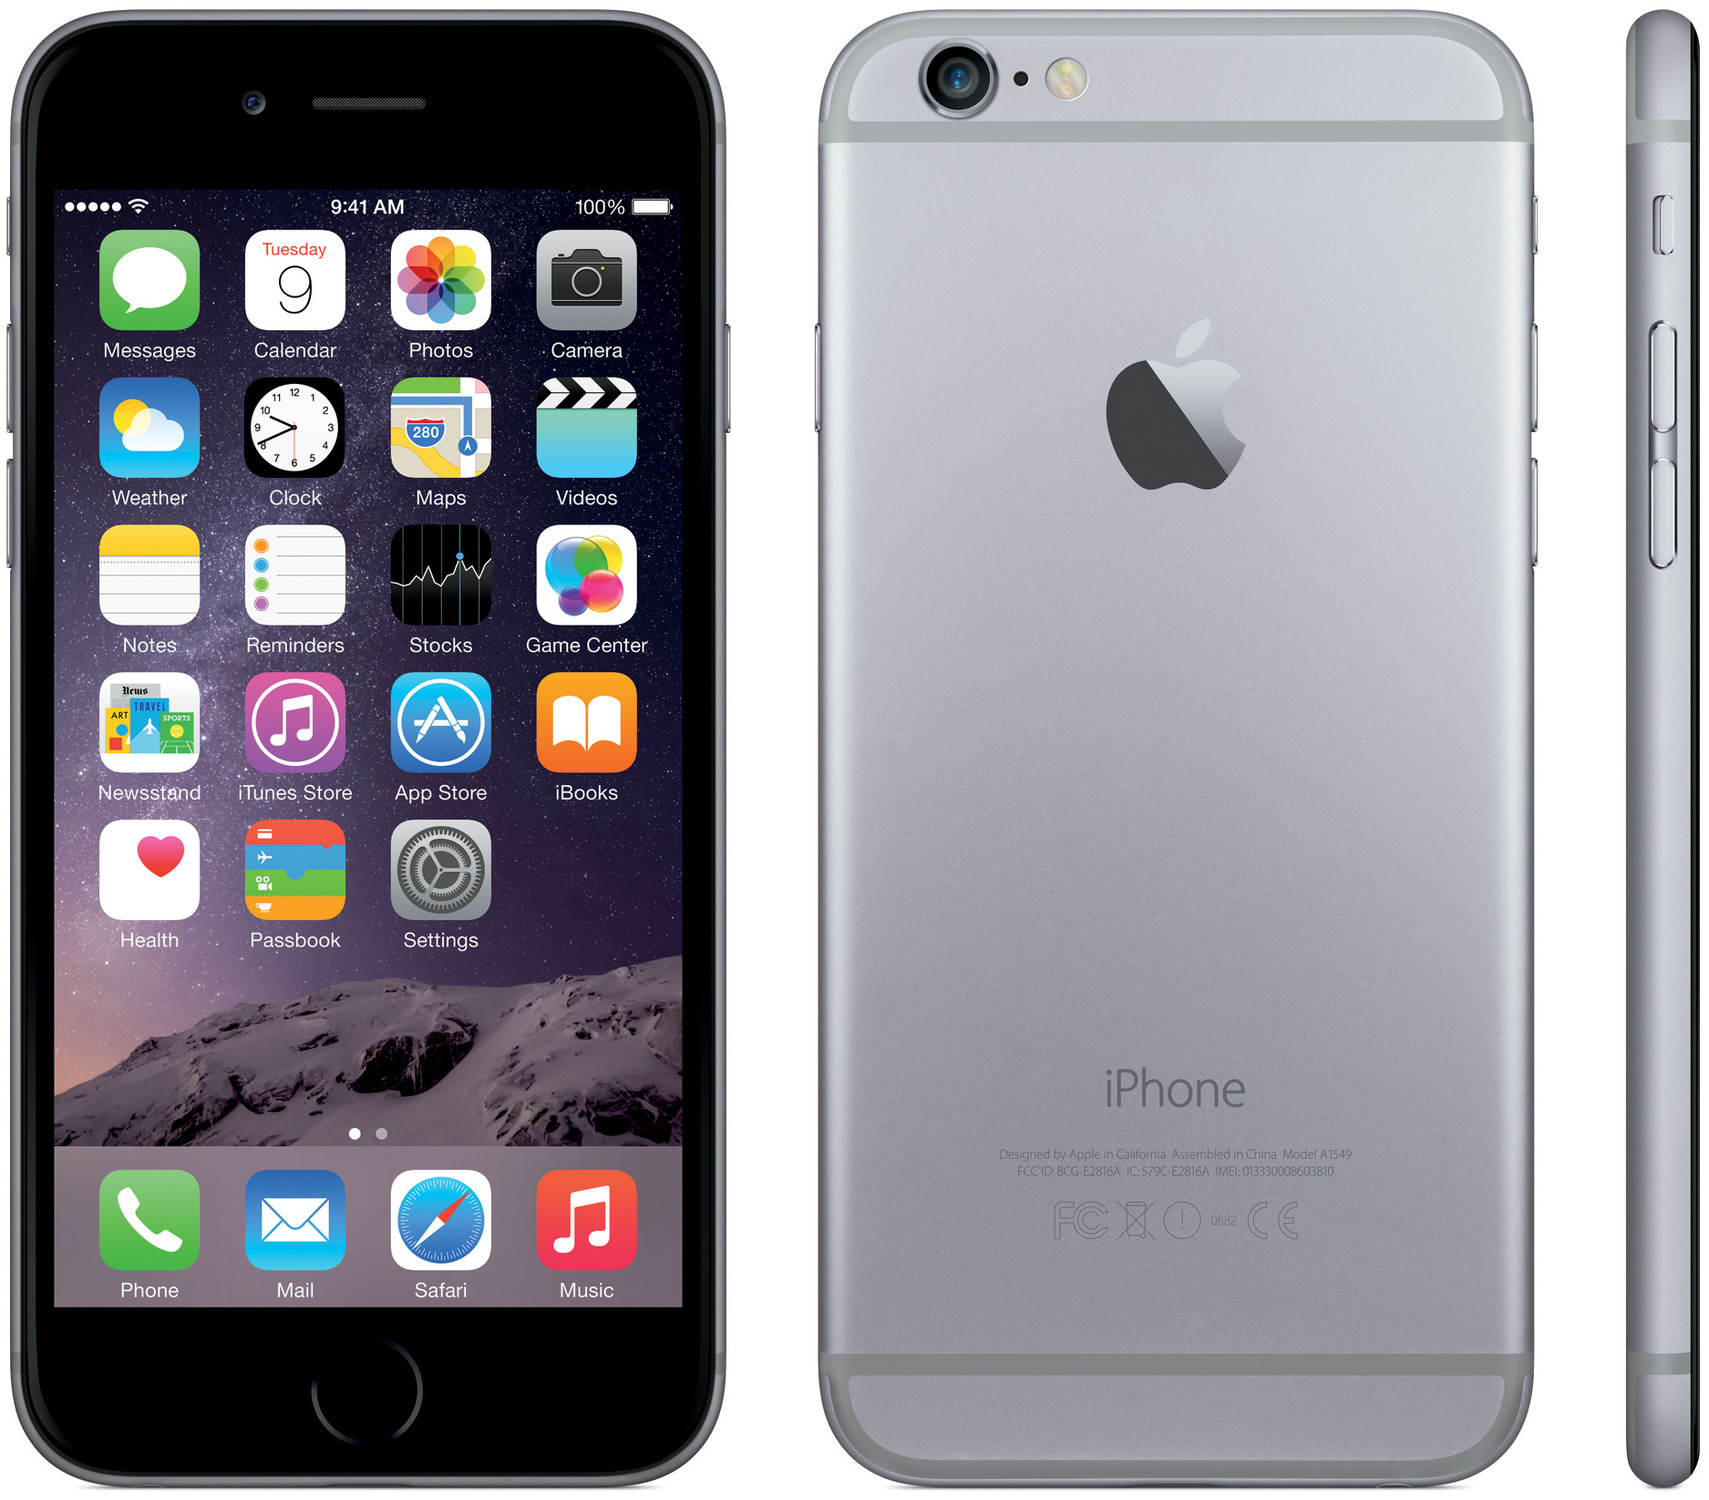 iphone 6 price t mobile apple iphone 6 plus t mobile 16gb specs and price phonegg 1394